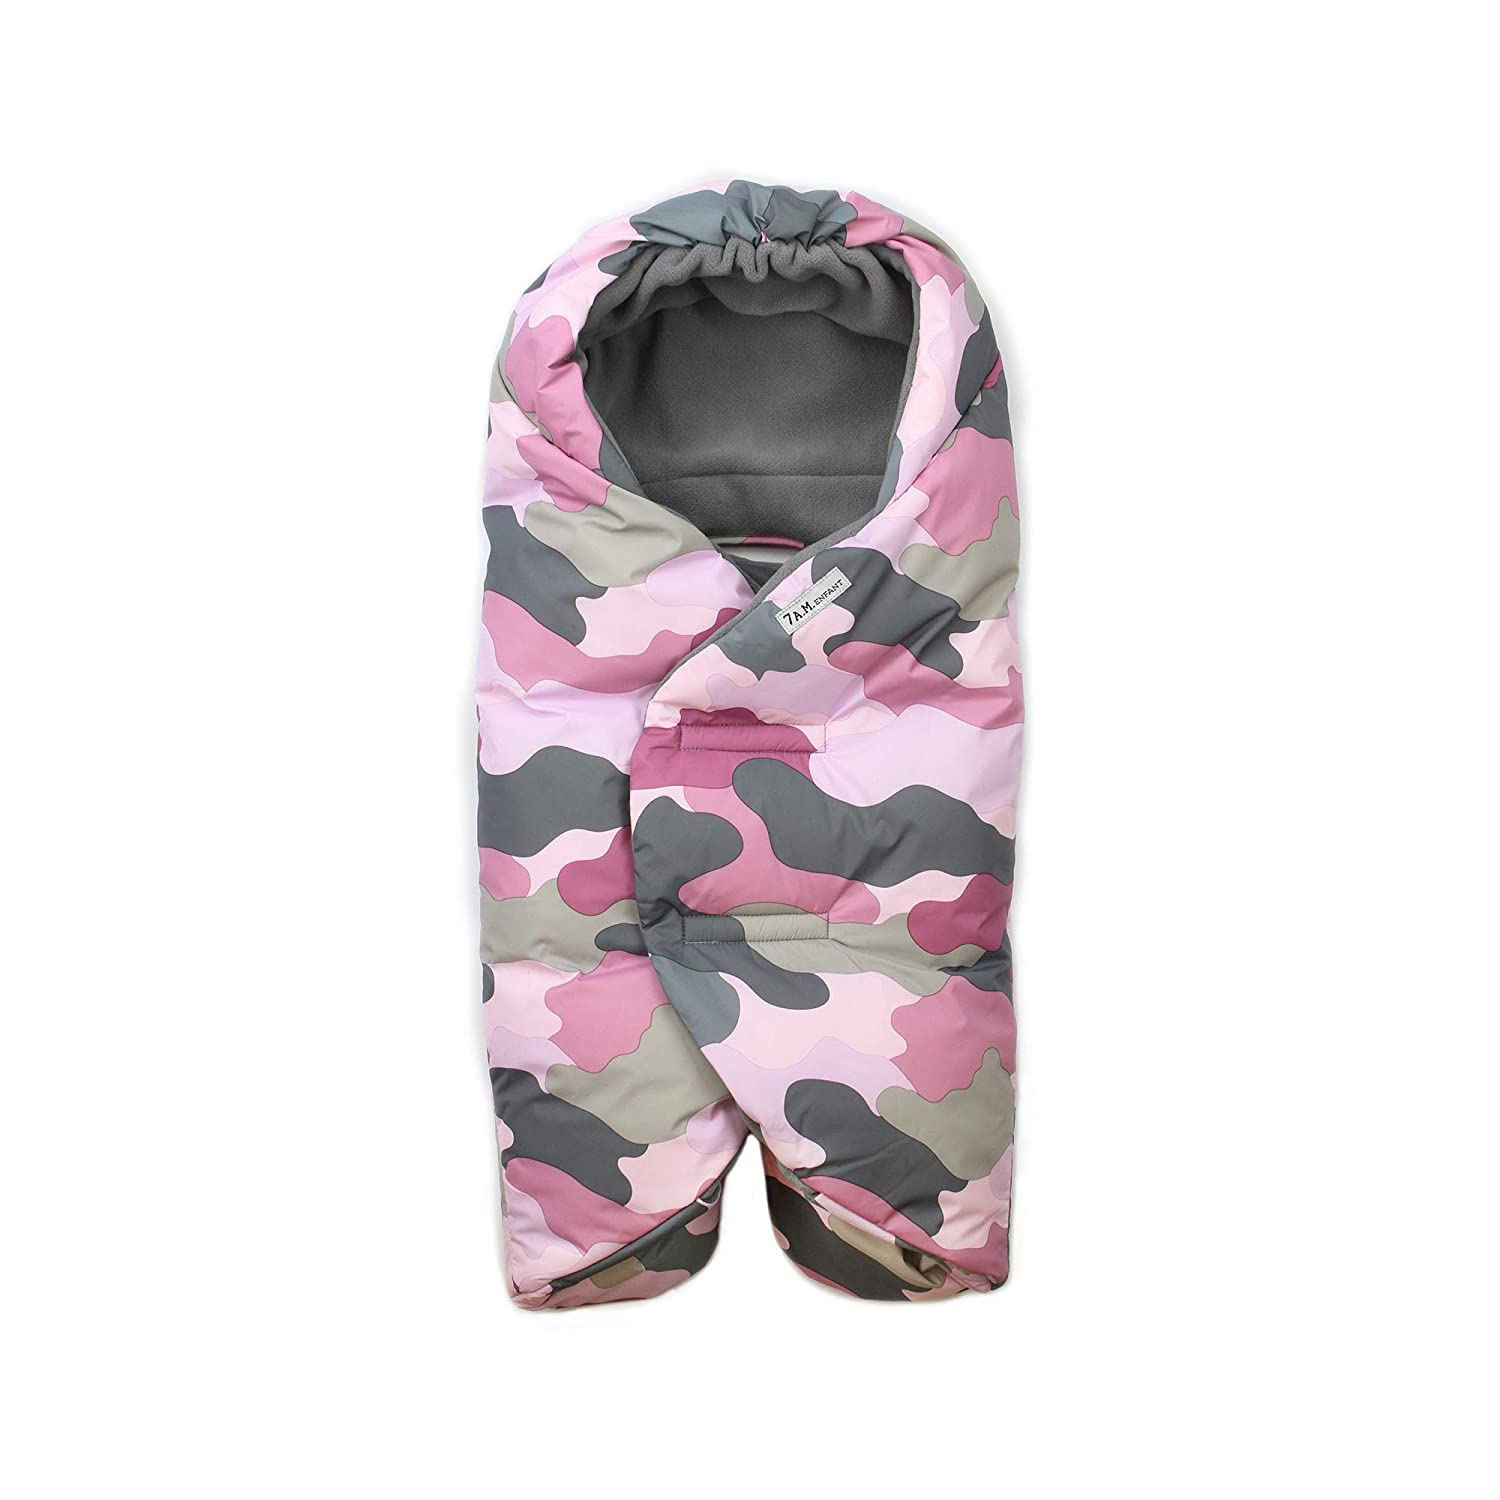 7 A.M. Enfant Nido Quilted, Camo Pink, Large